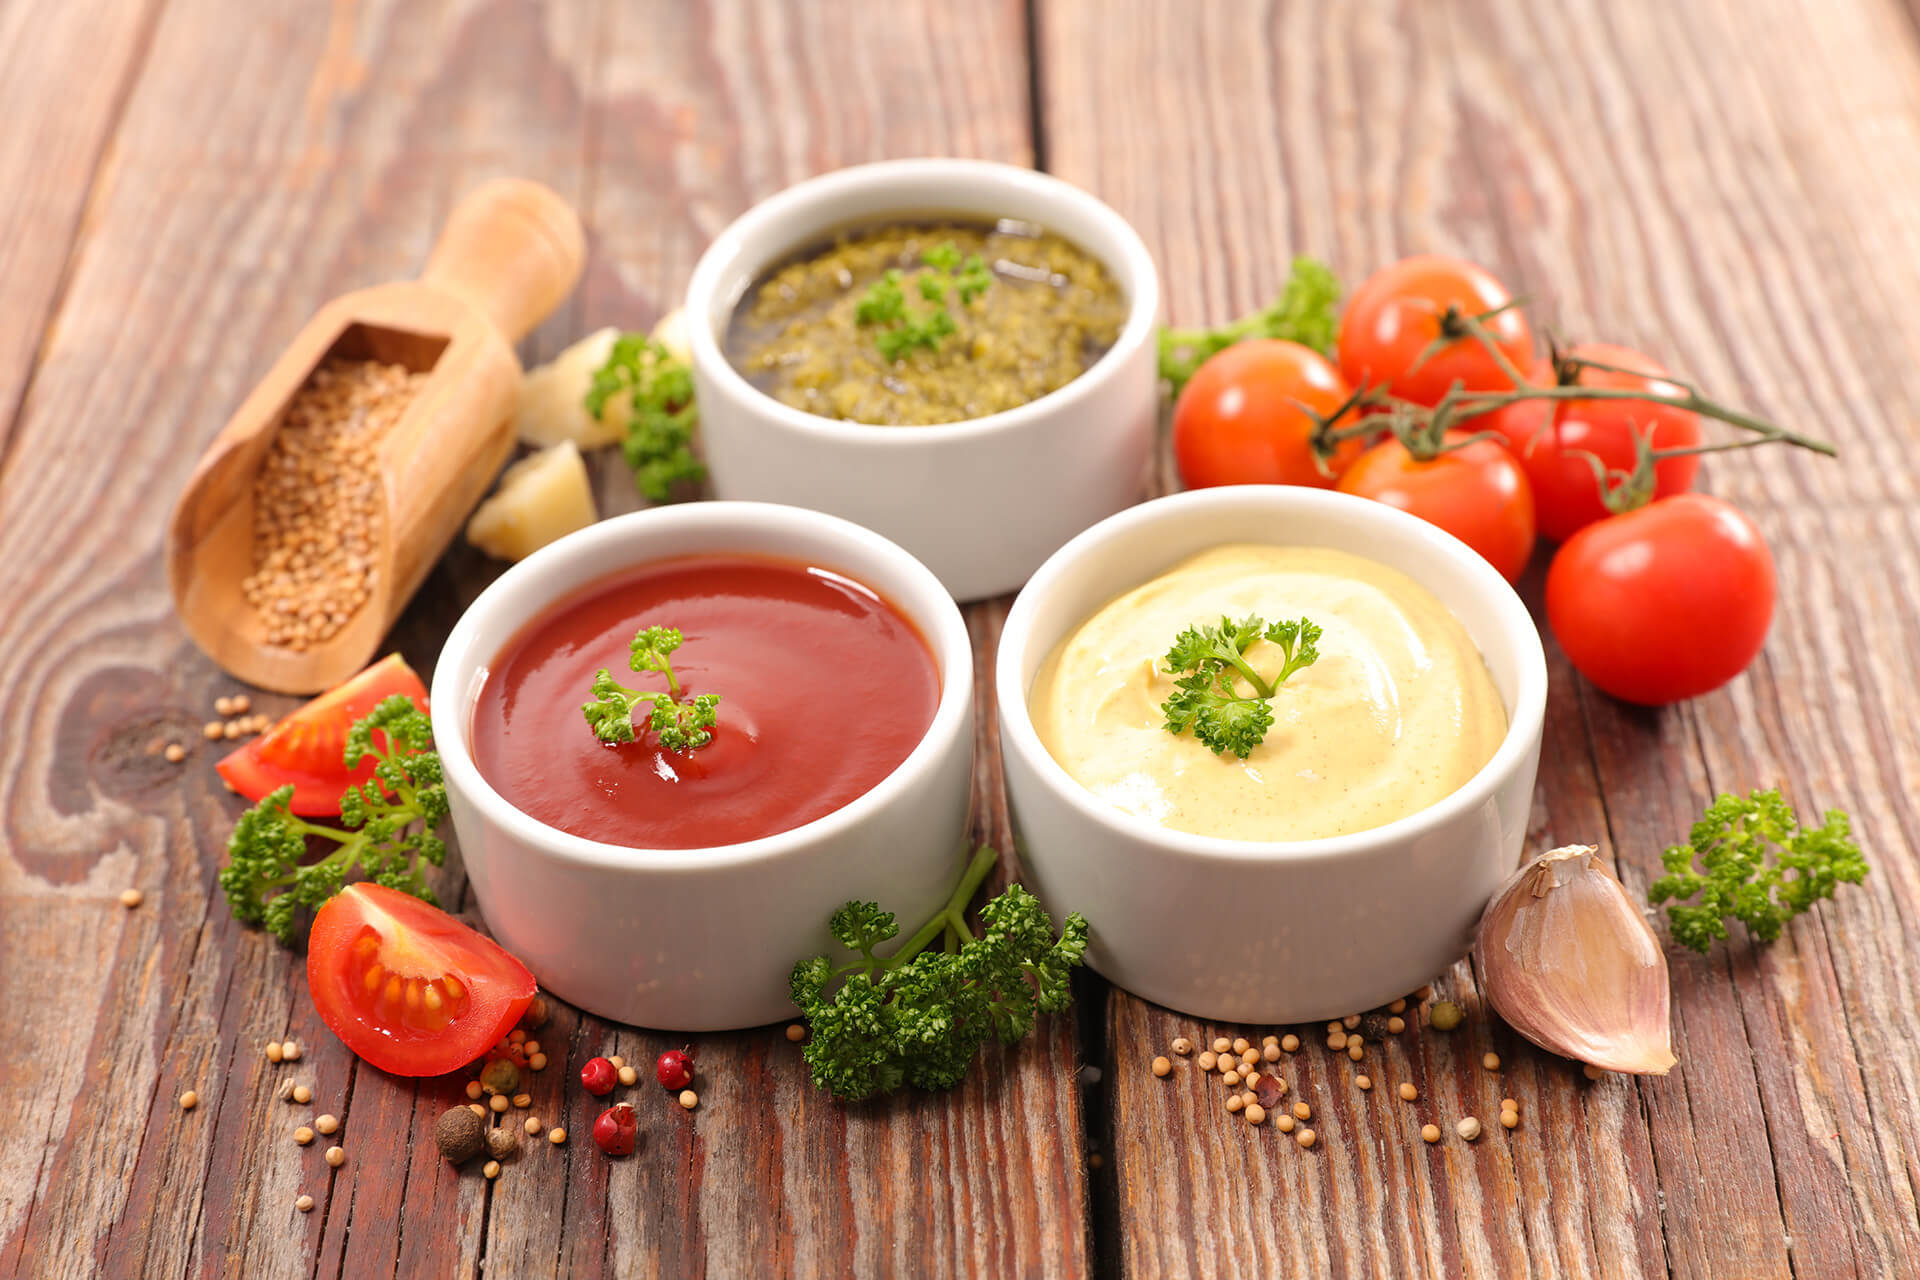 Chili / Chilli paste, mustard paste, tomato paste / powder, oleoresin sauce, soy /garlic sauce and other sauces